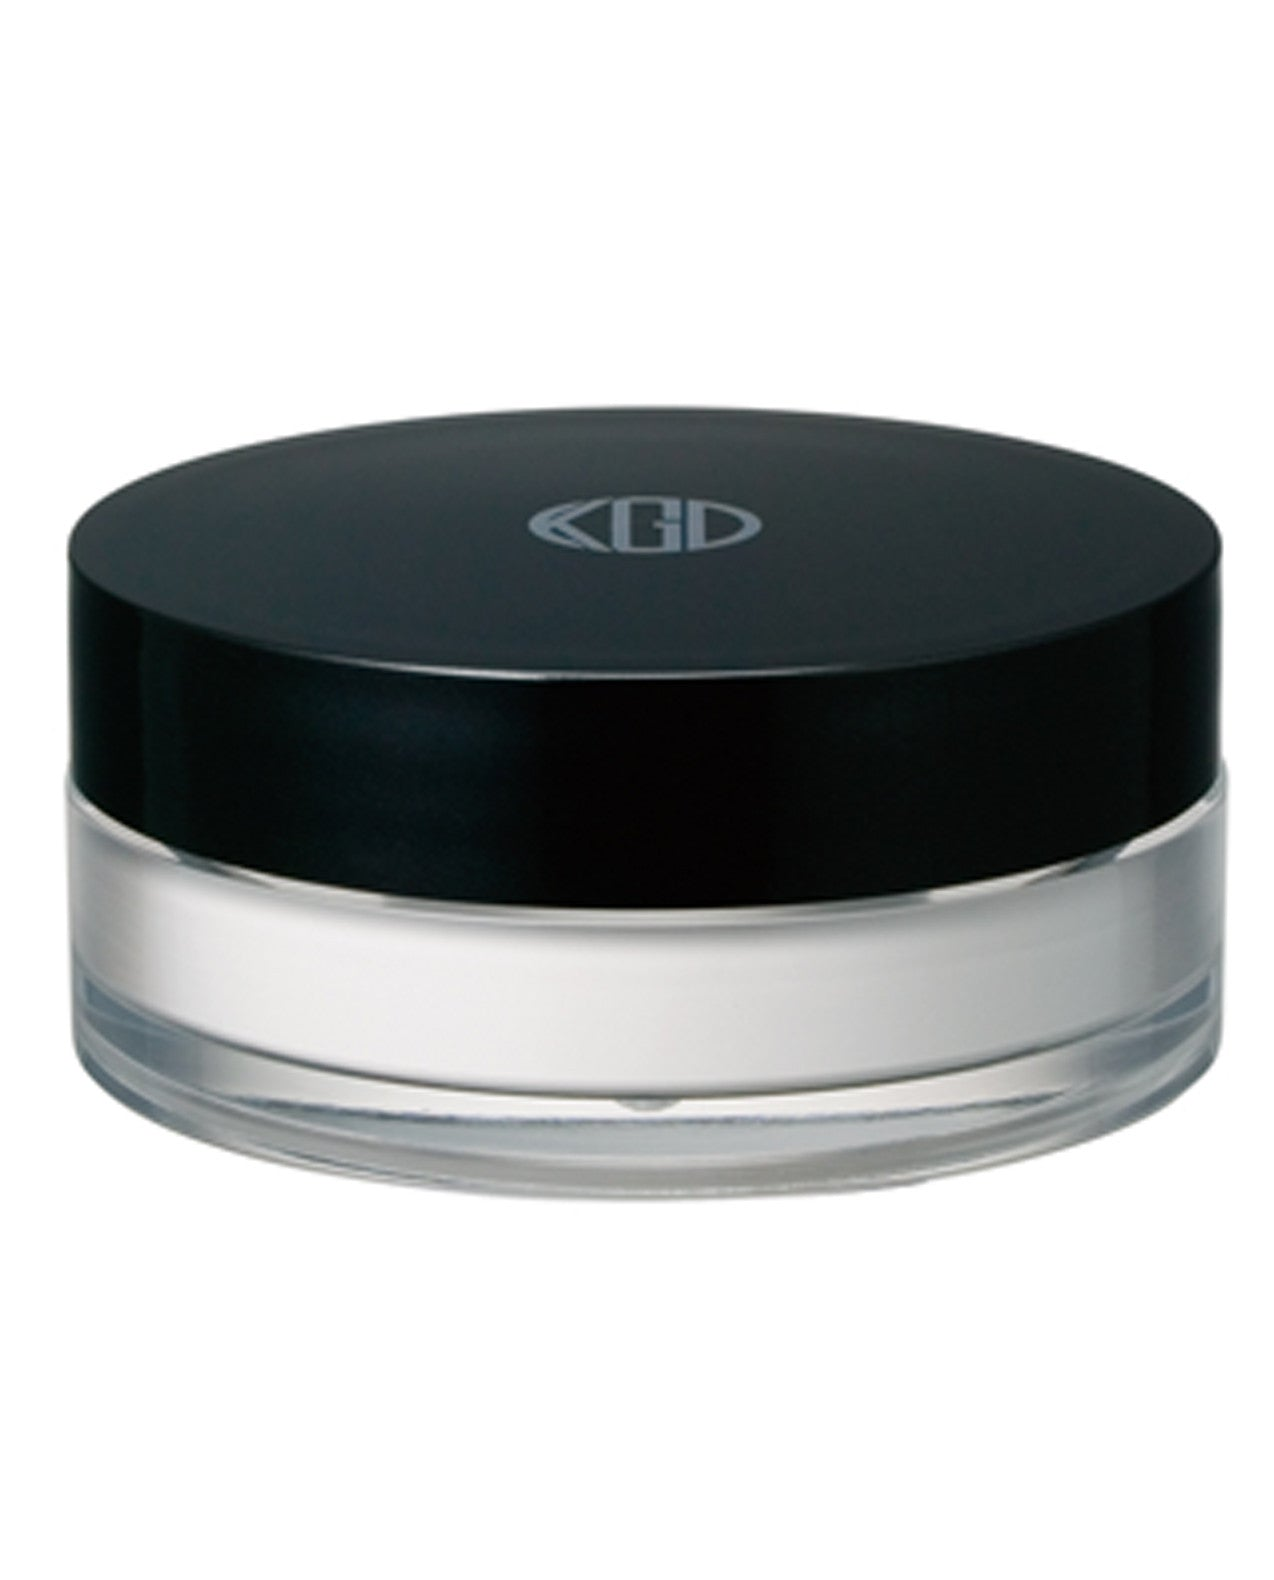 Set your makeup for hours without dryness with this velvety, translucent setting powder.